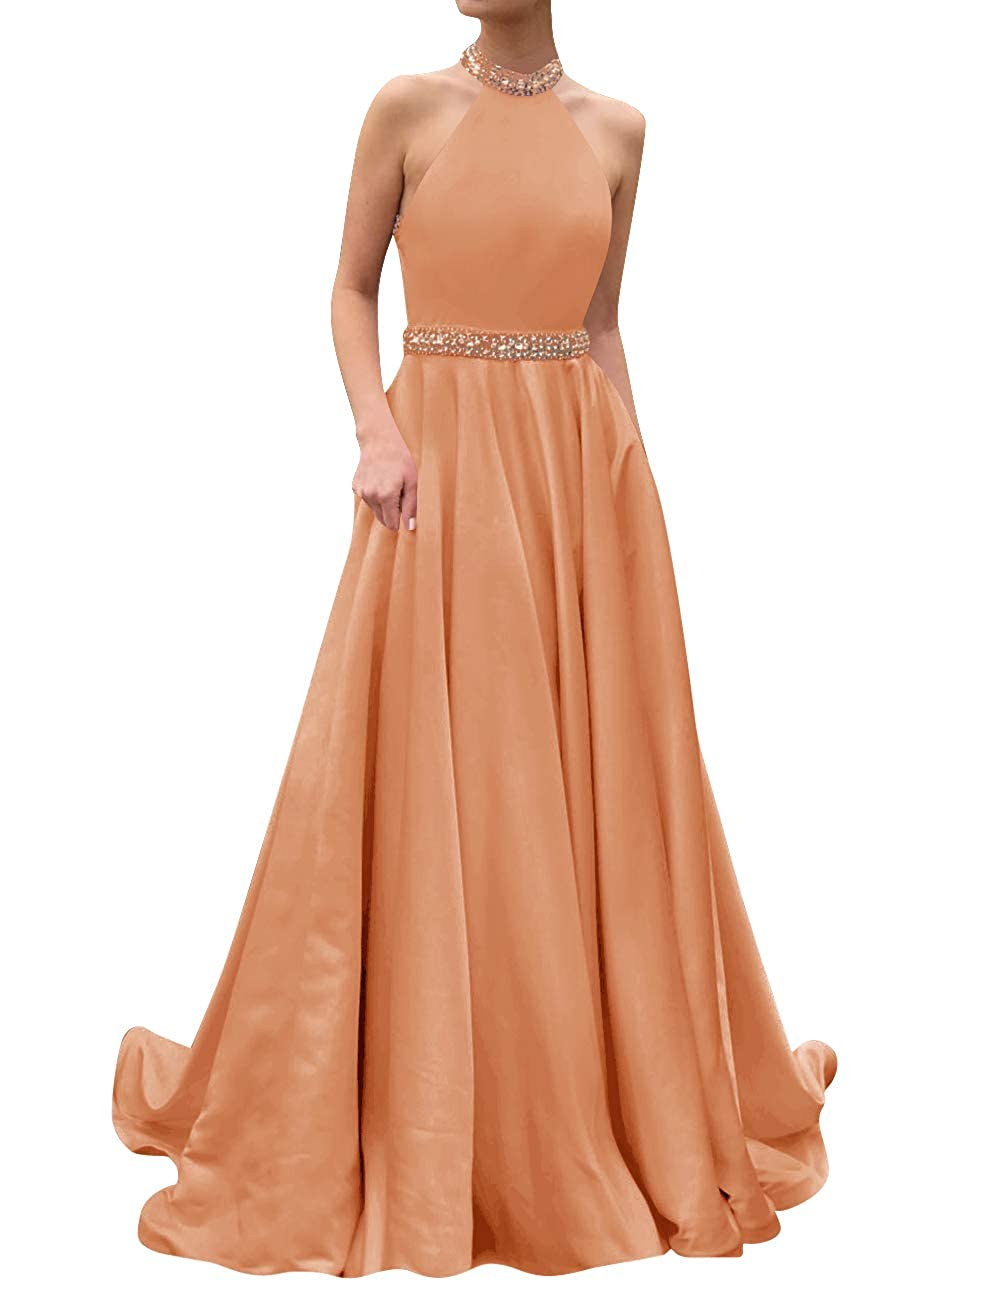 Coral ASBridal Prom Dresses Long Evening Gowns Halter Beaded Party Prom Gowns Bridesmaid Dress Open Back